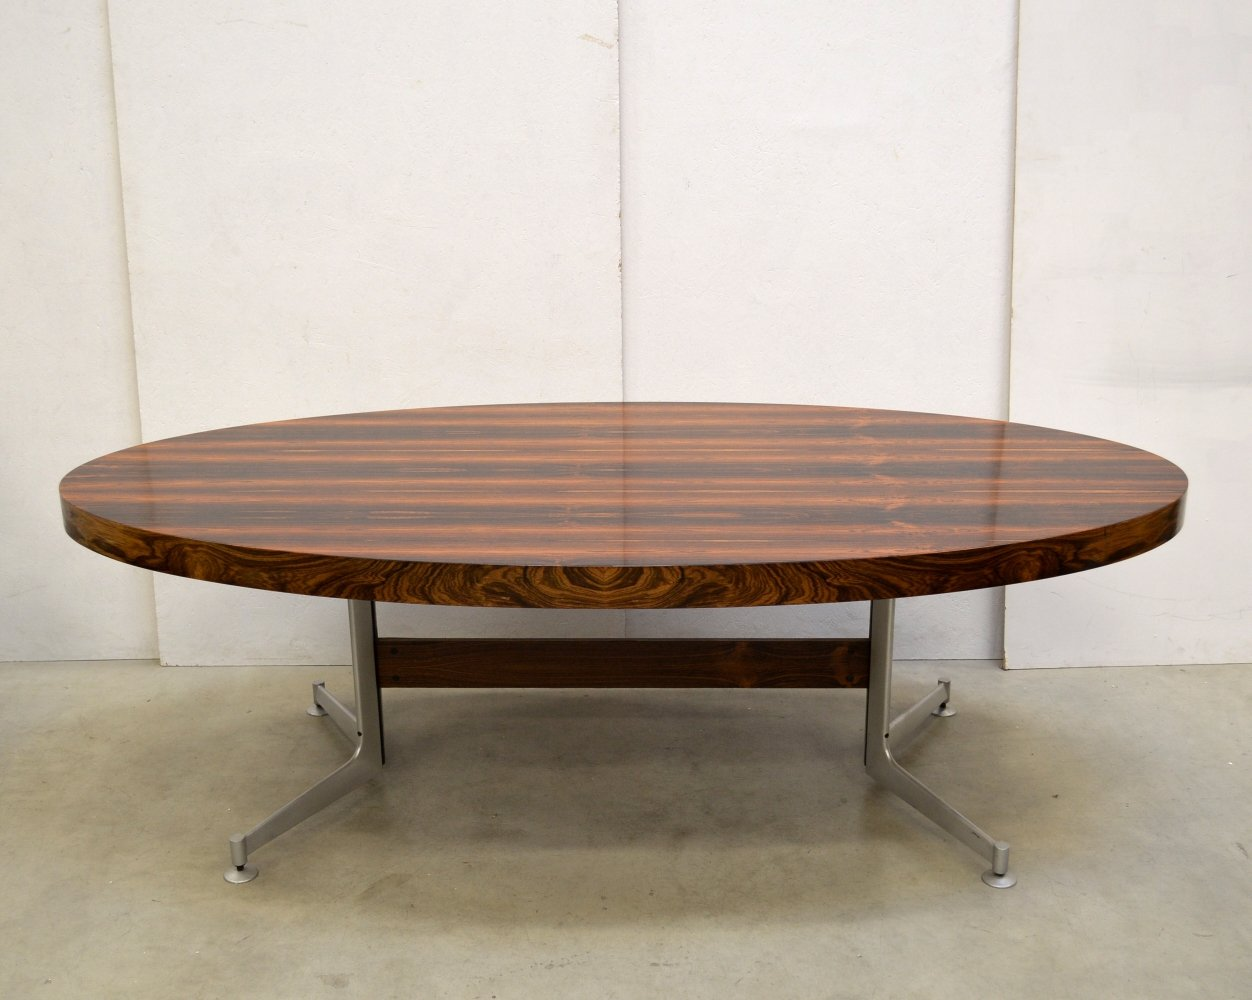 Rare Fabricius & Kastholm Rosewood Conference Table by Kill International, 1960s